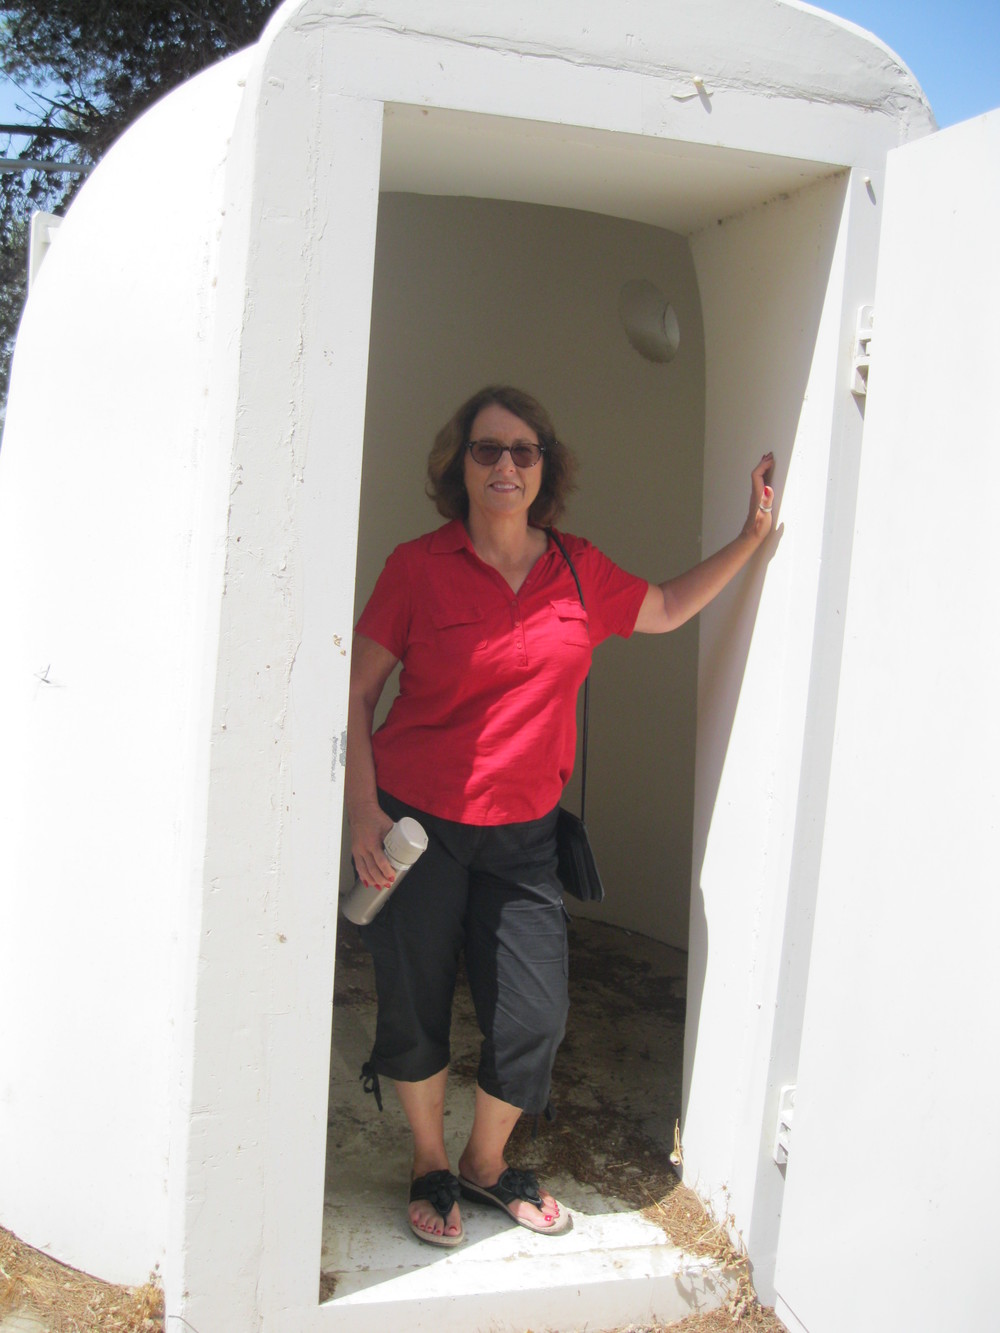 Deby is standing at the entrance of one of the shelters